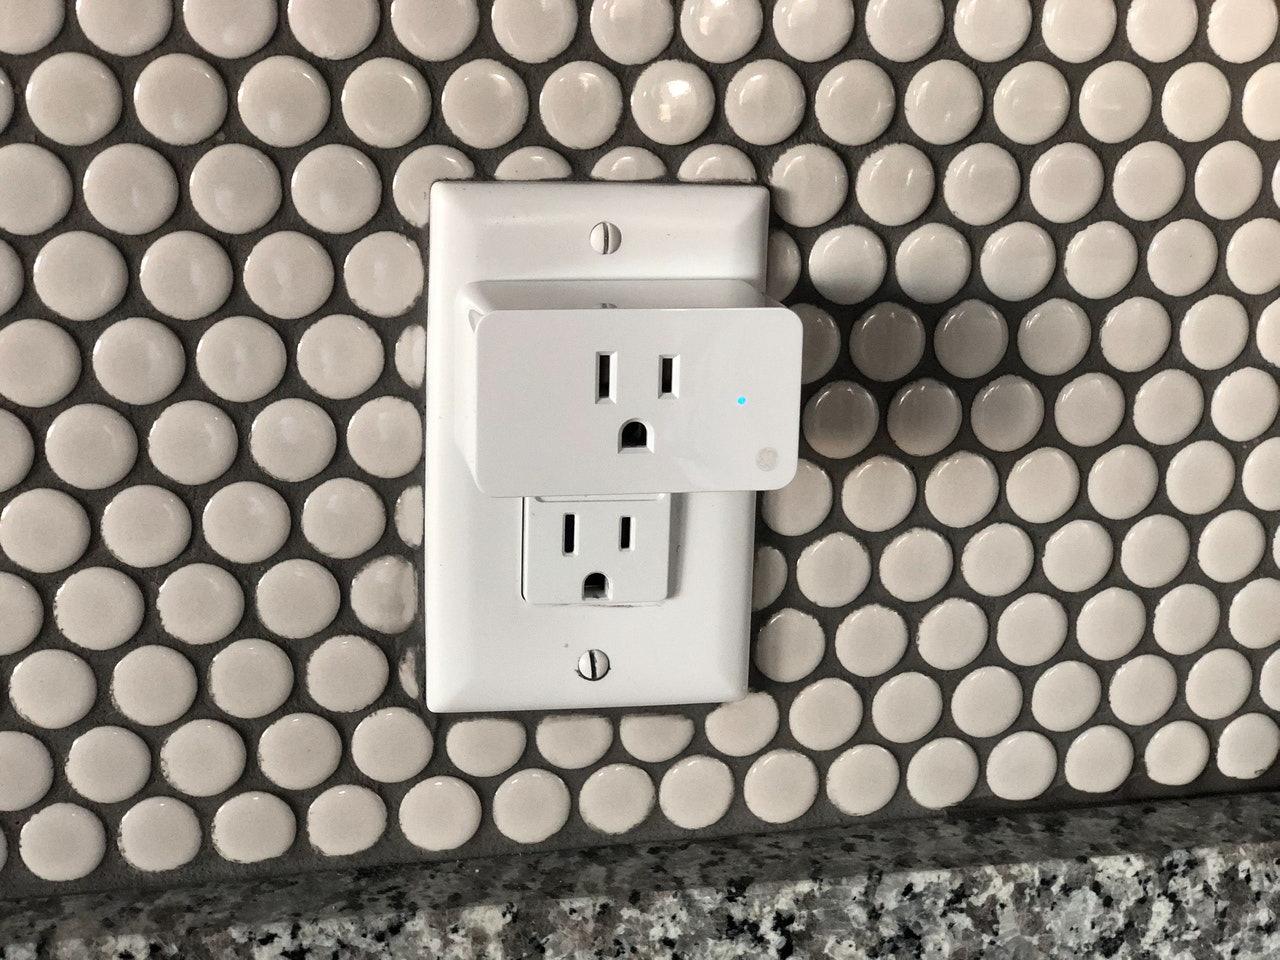 What Are the Problems of Smart Switches and Smart Sockets